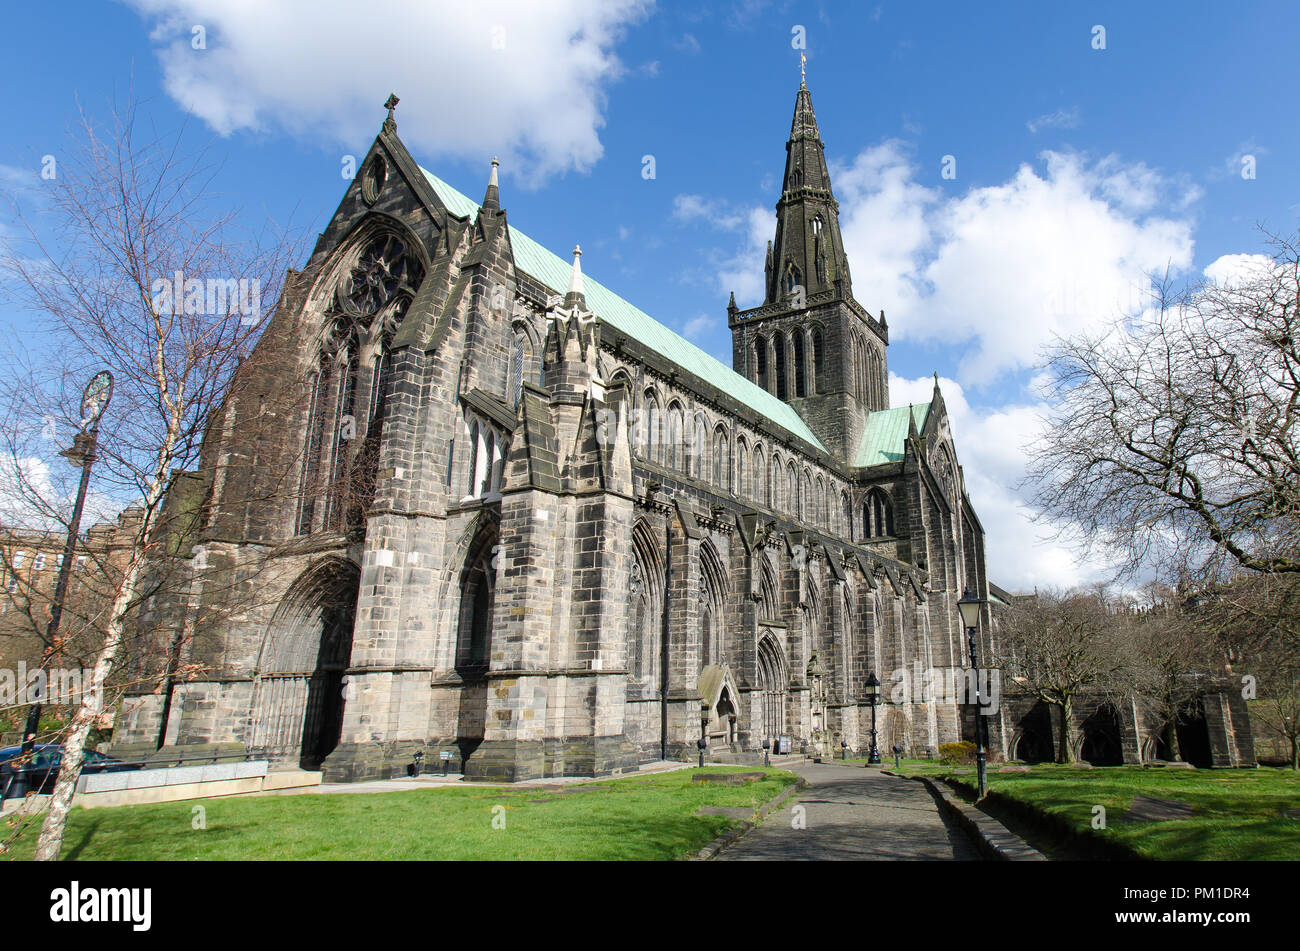 St Mungo's cathedral in Glasgow, Scotland, on a beautiful sunny winter day. No trees have any leaves owing to the time of year. - Stock Image